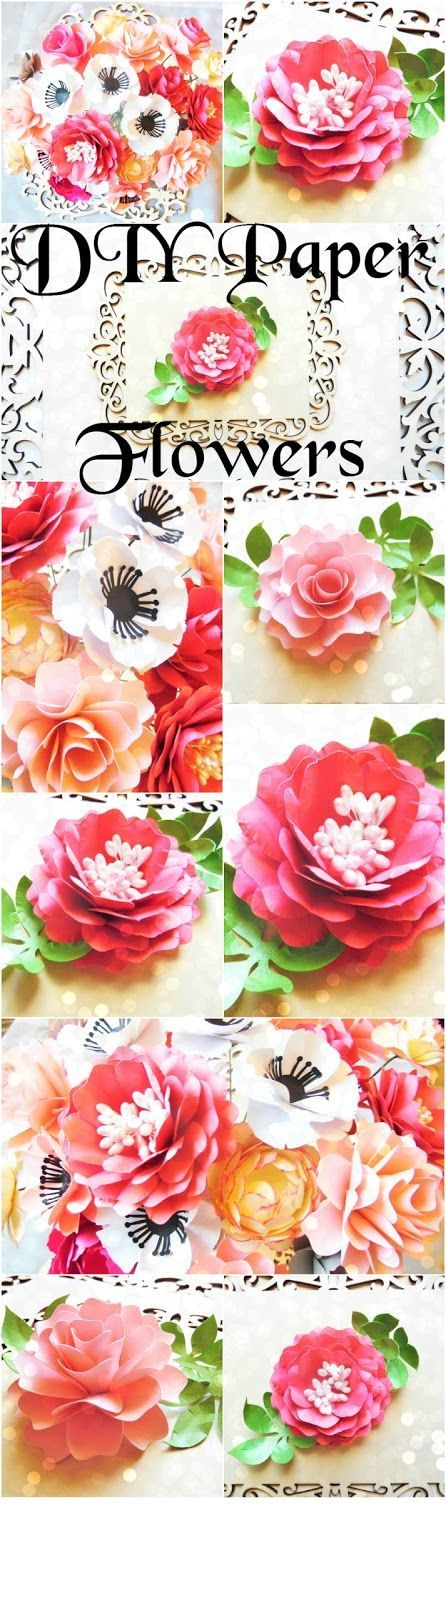 How to DIY a Paper Flower Bouquet #easypaperflowers DIY paper flower bridal bouquet. Easy paper flowers. Flower templates and tutorial. #easypaperflowers